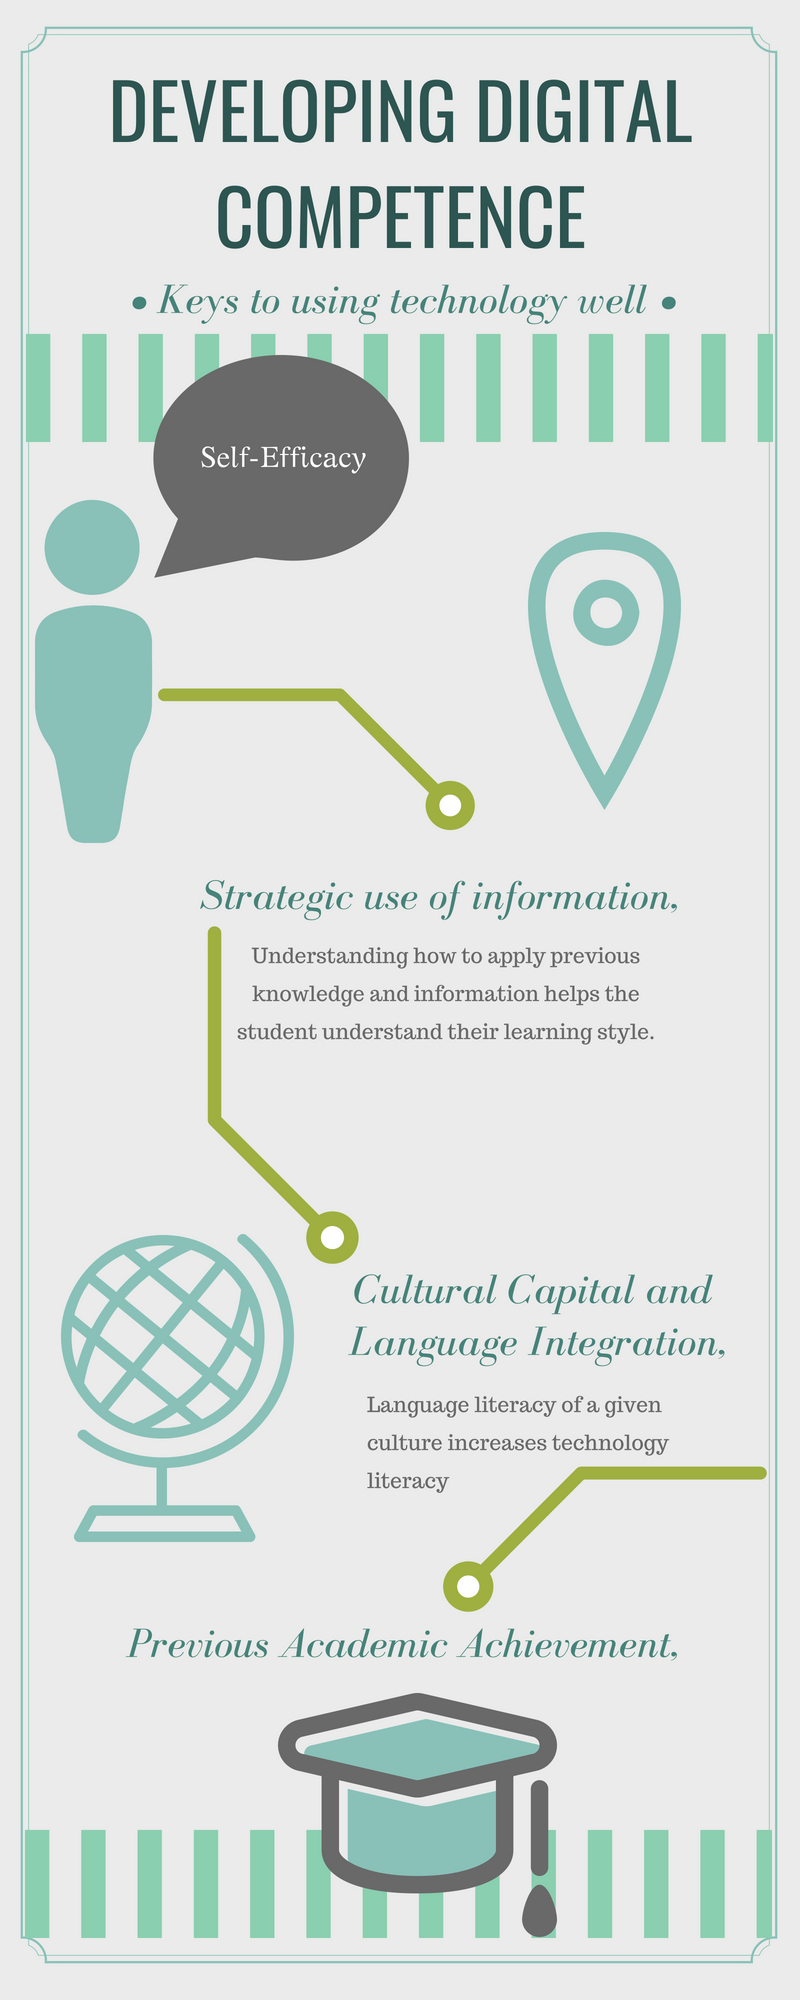 Infographic on the key elements for developing digital competence